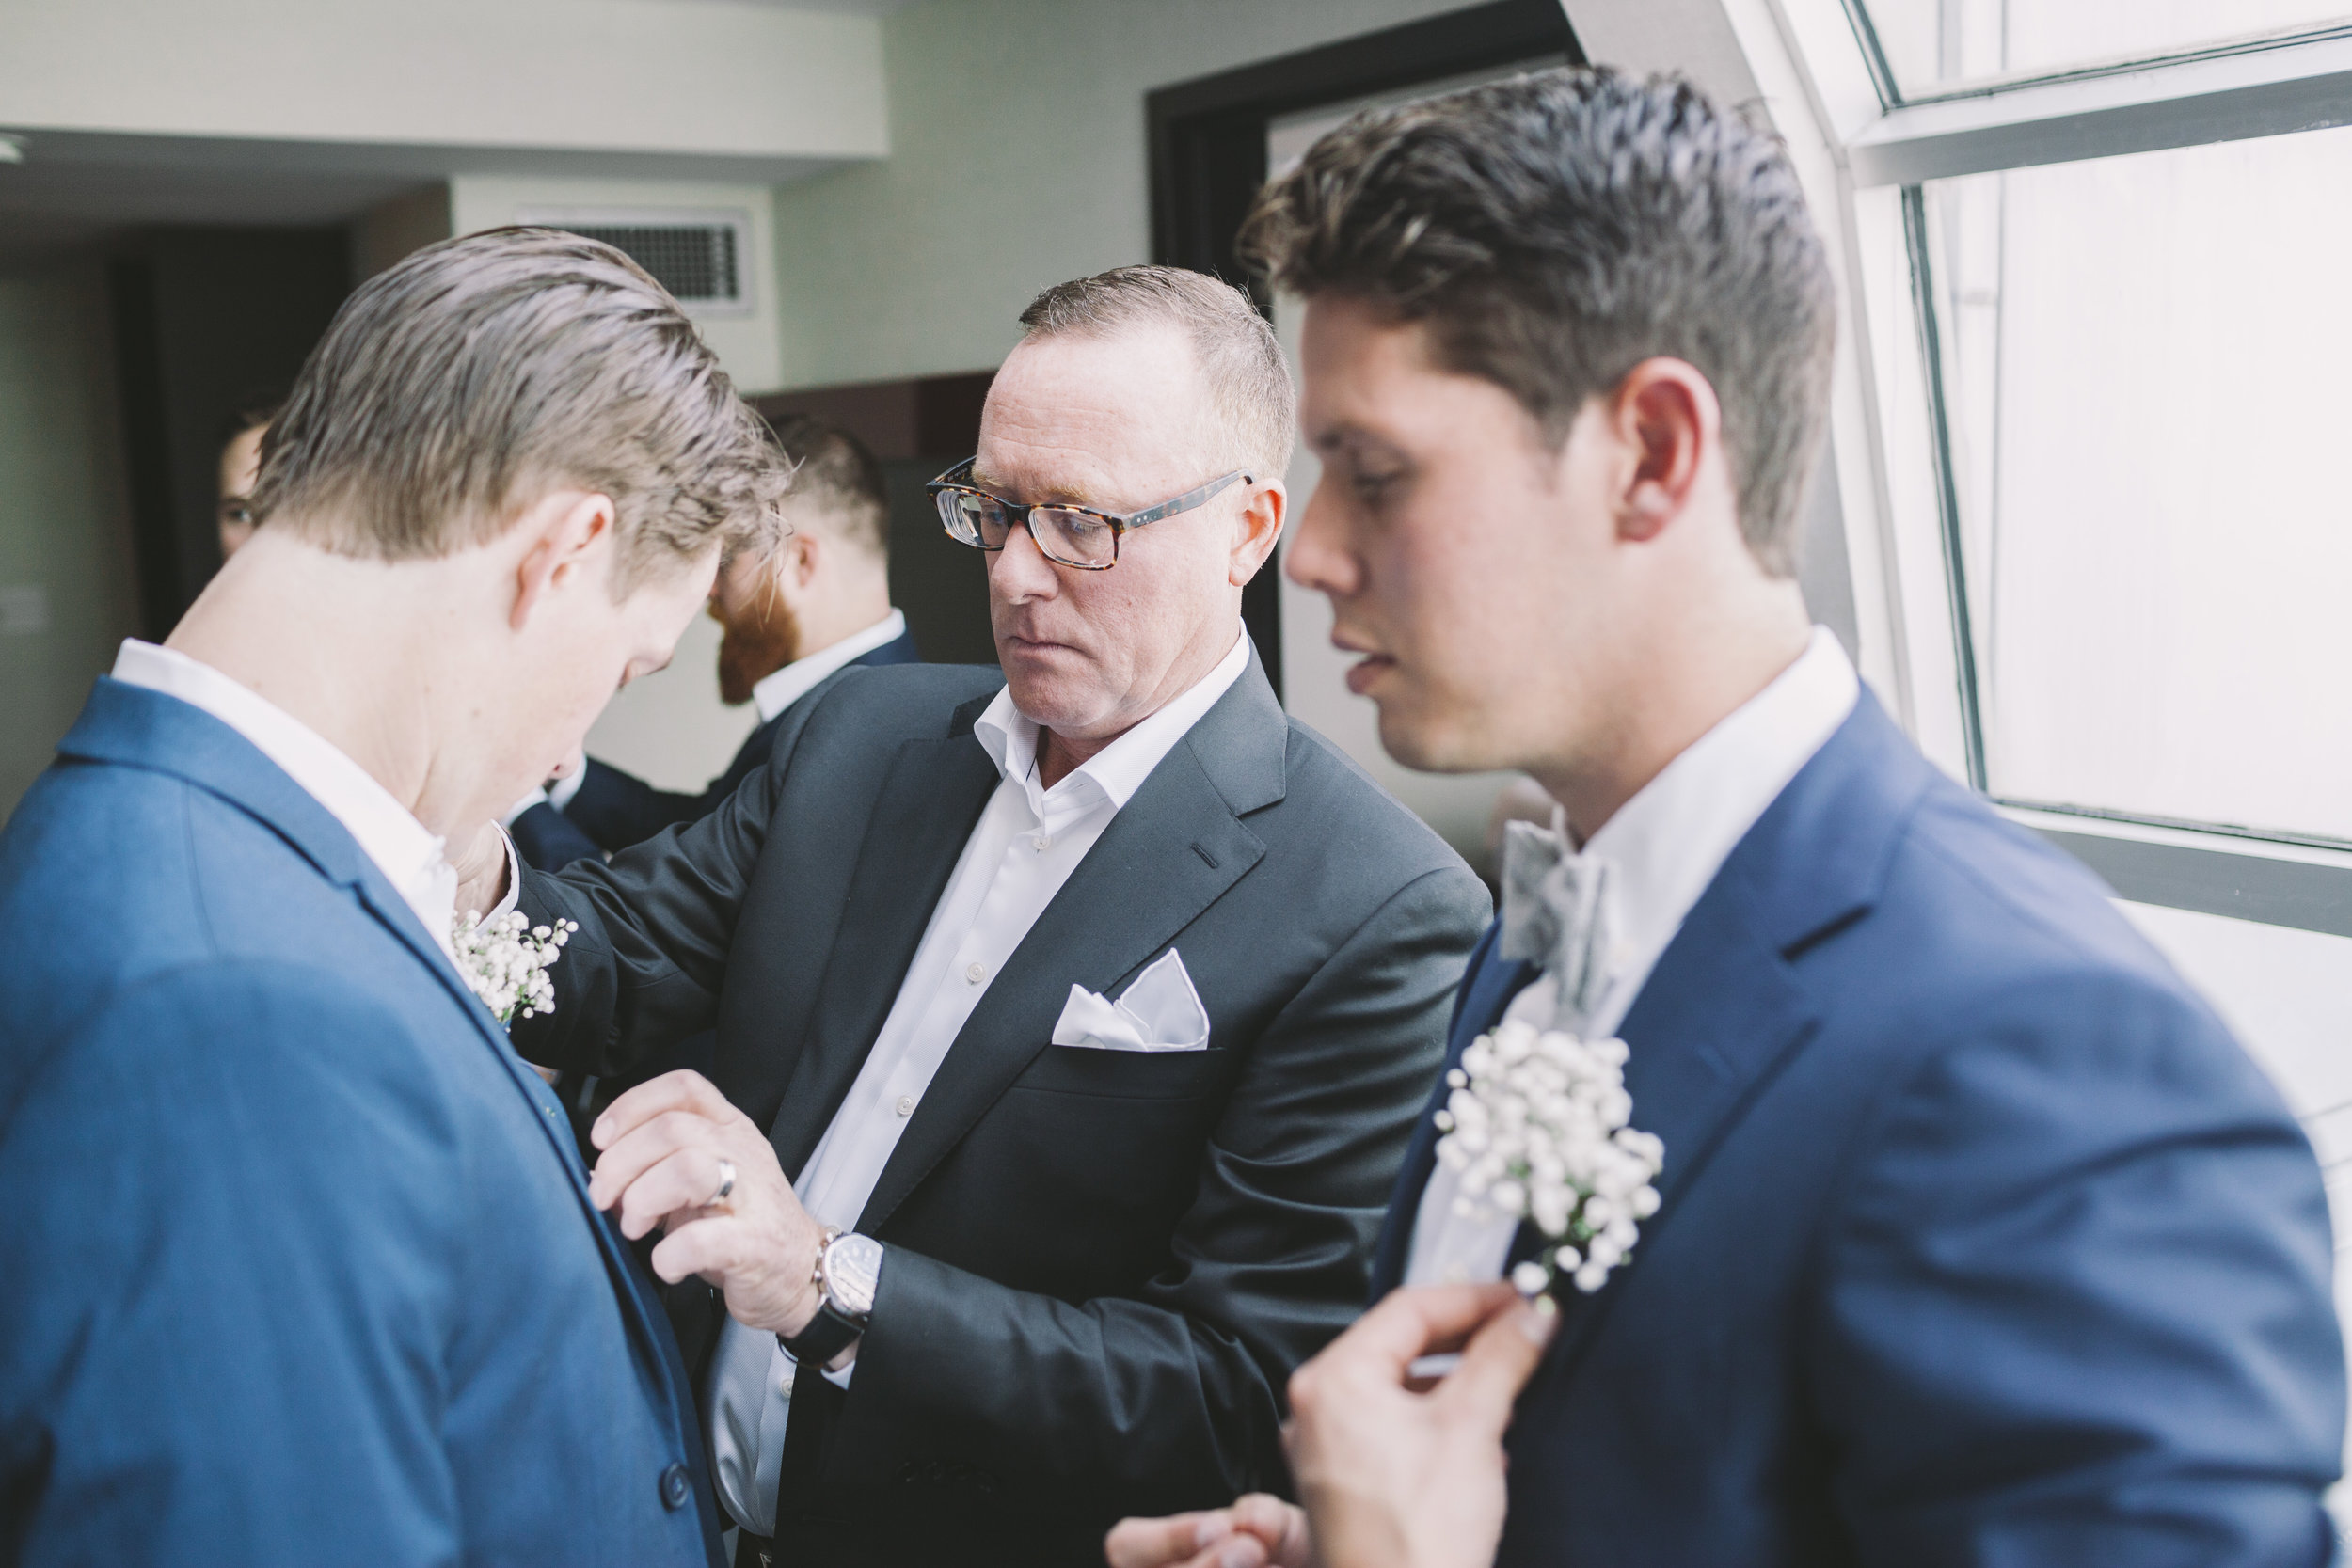 Groom putting on boutonniere.